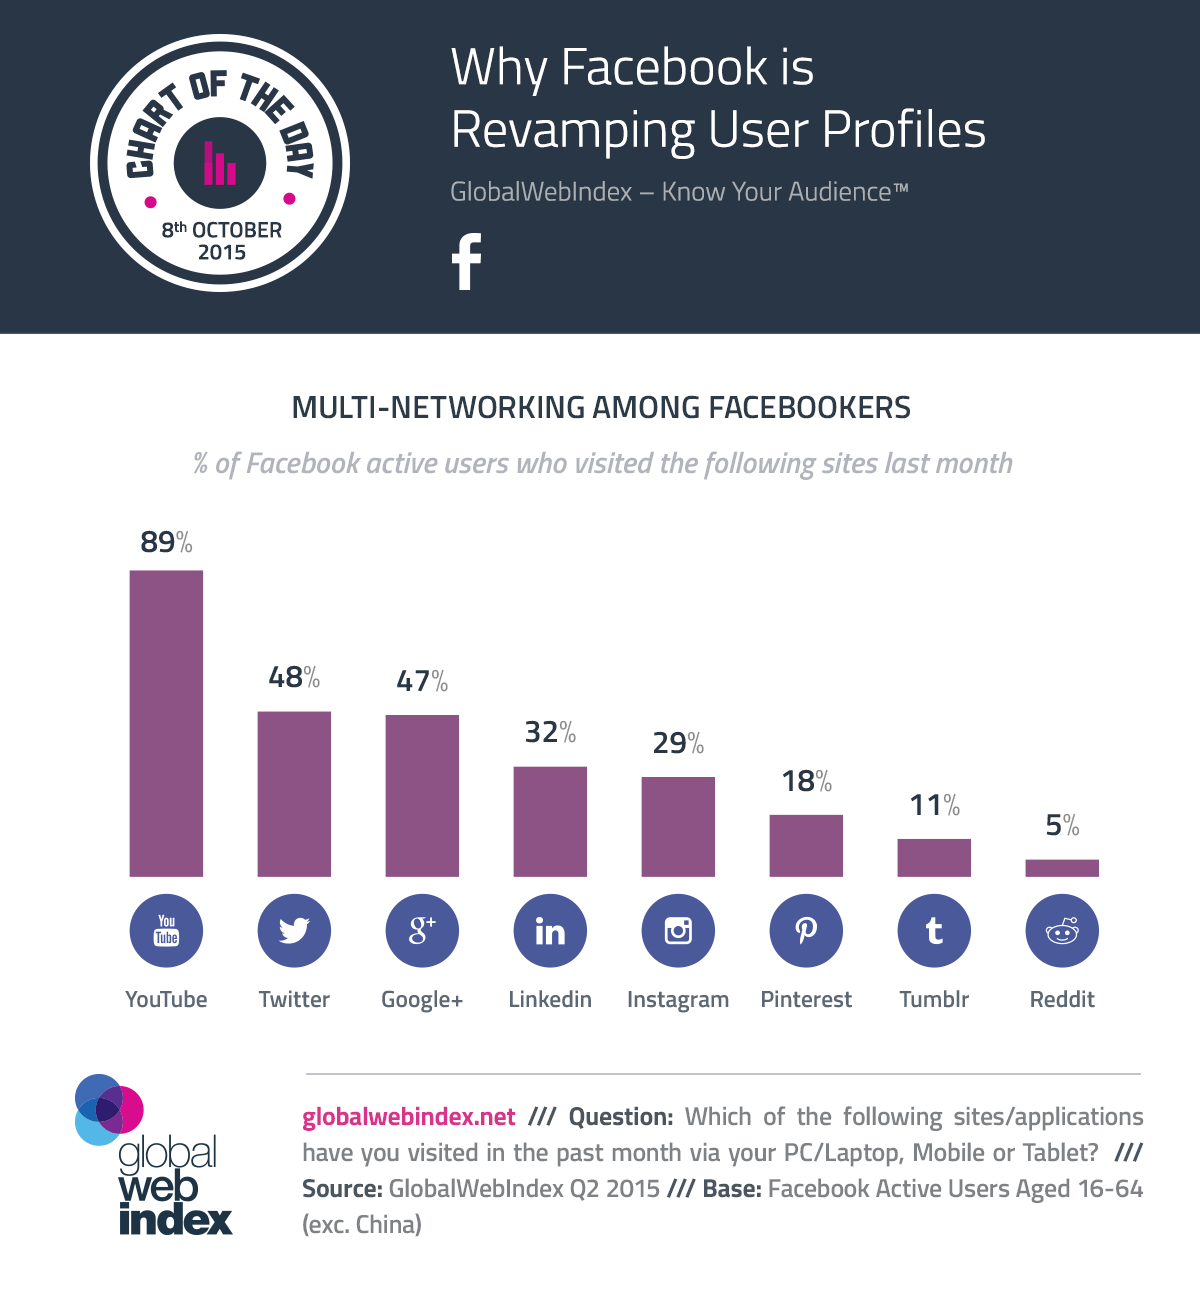 8th-Oct-2015-Why-Facebook-is-Revamping-User-Profiles